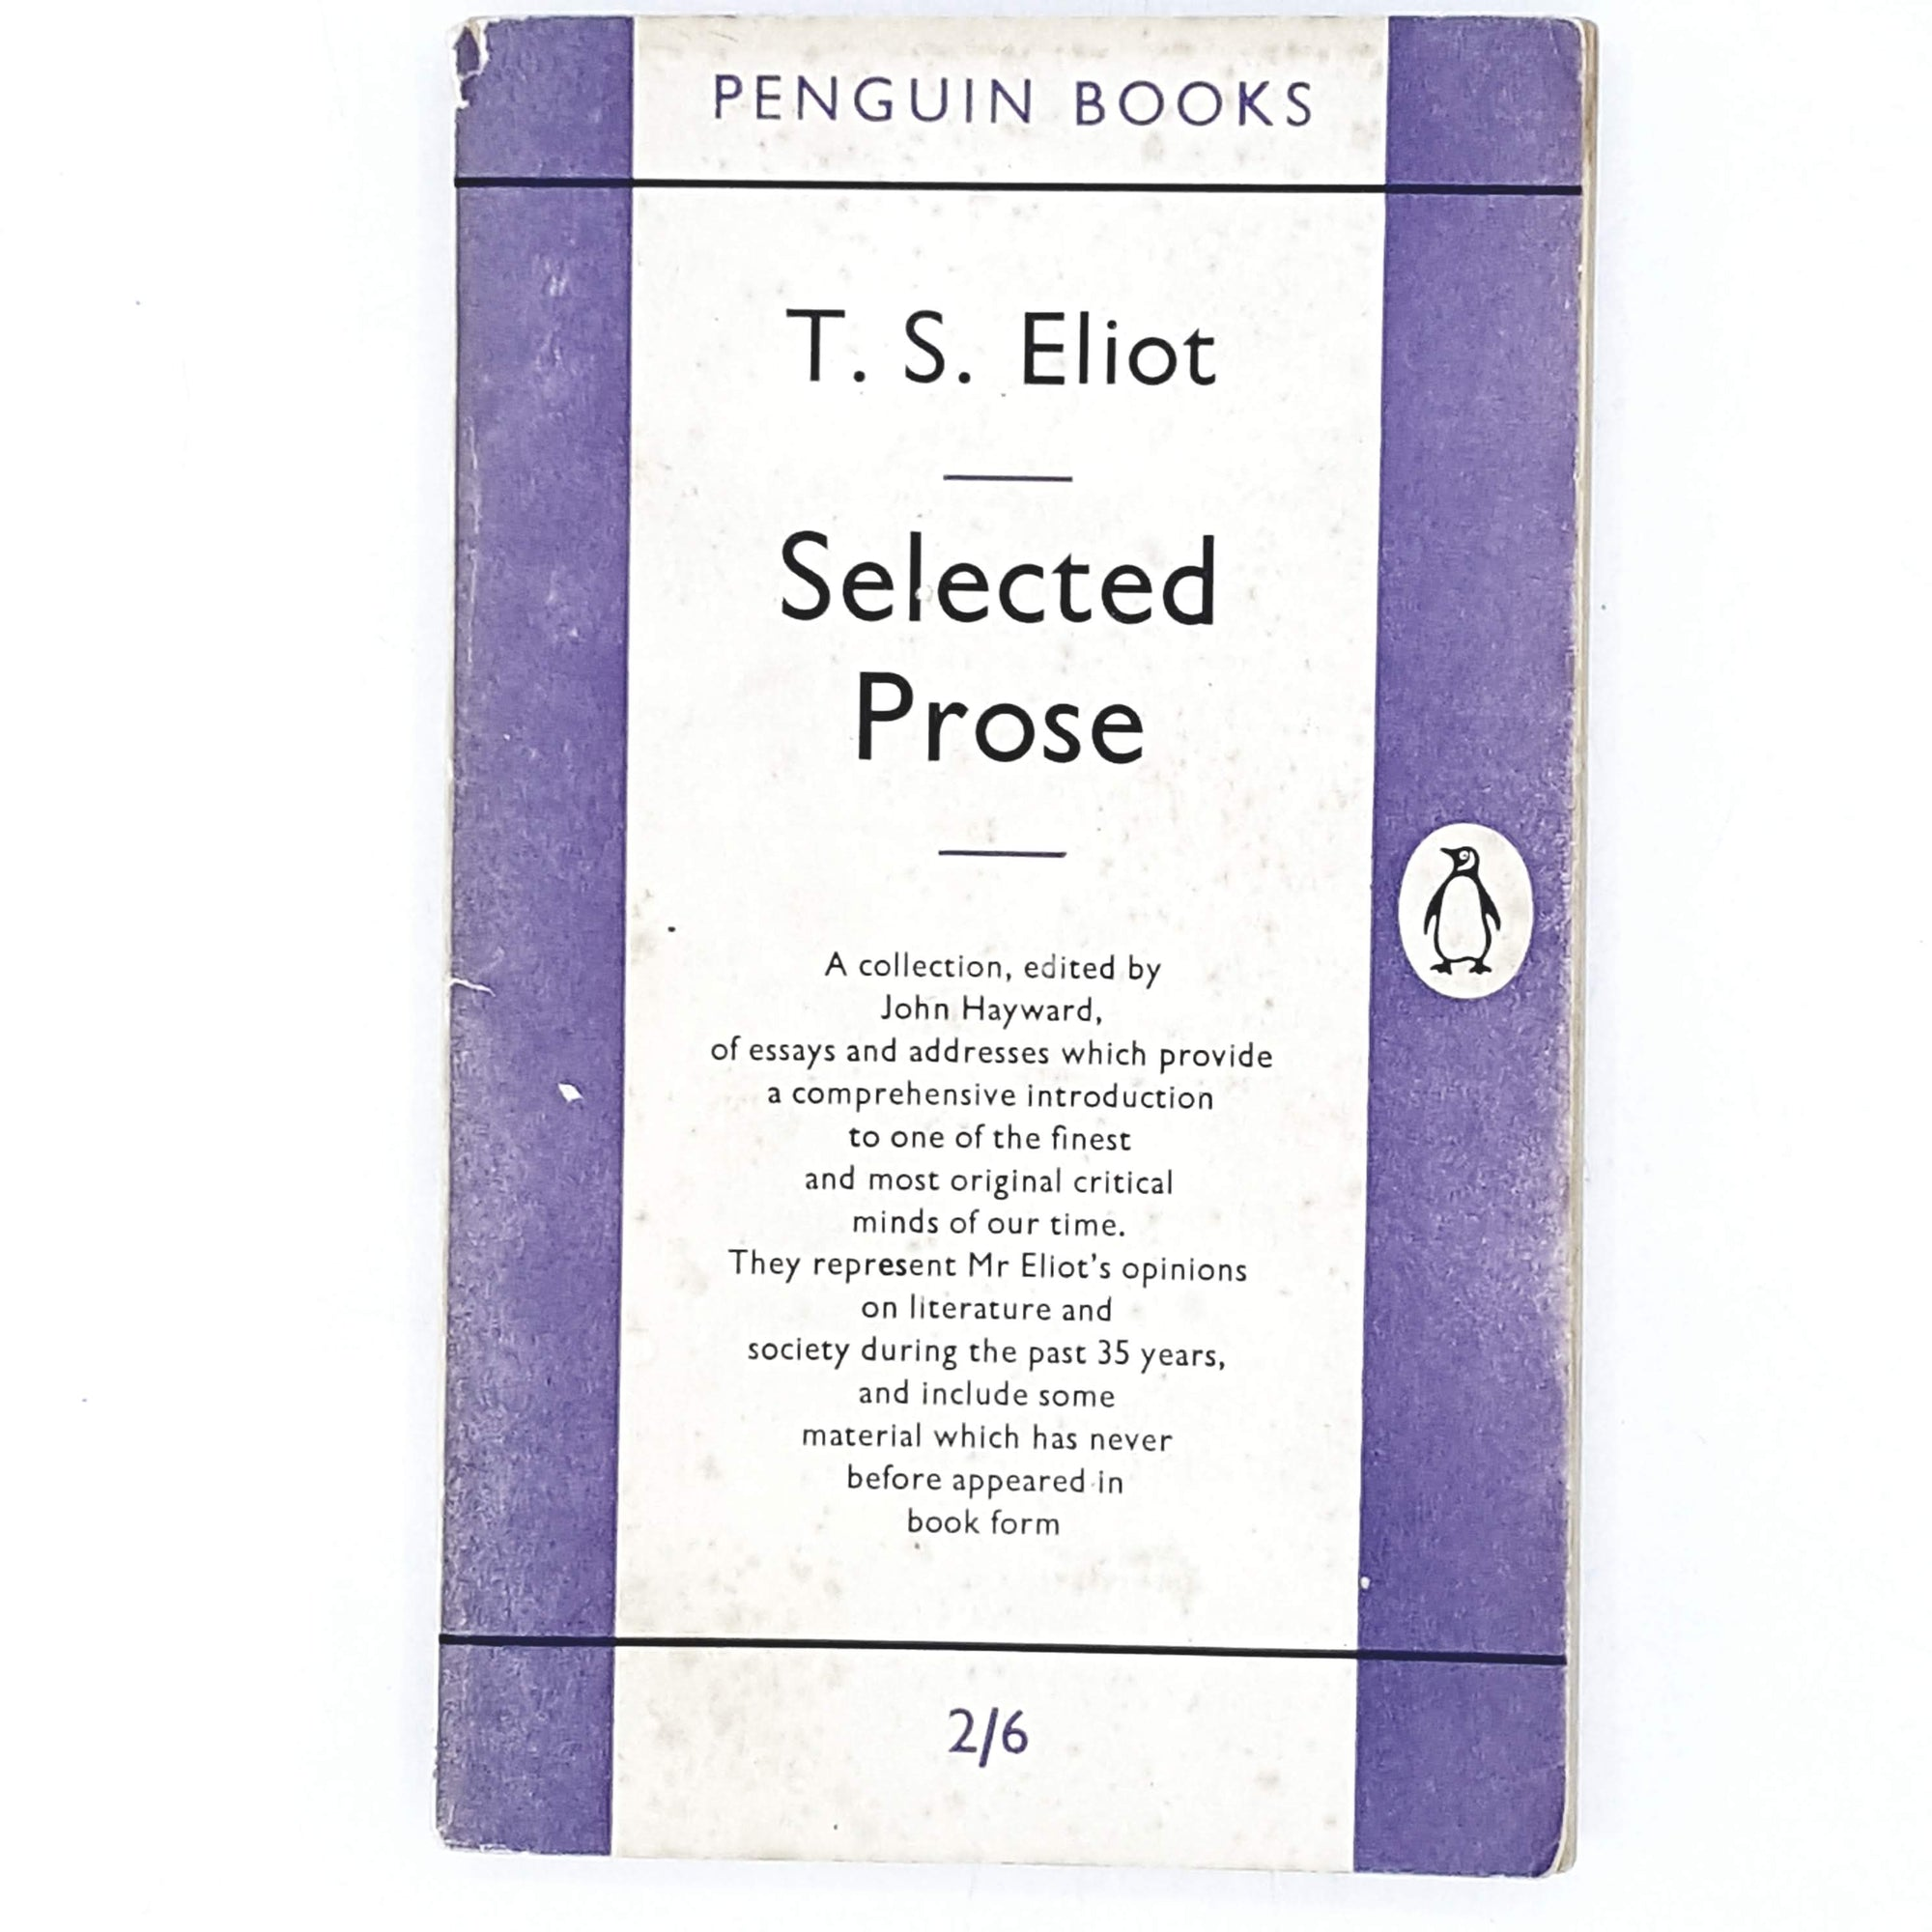 T. S. Eliot's Selected Prose 1955